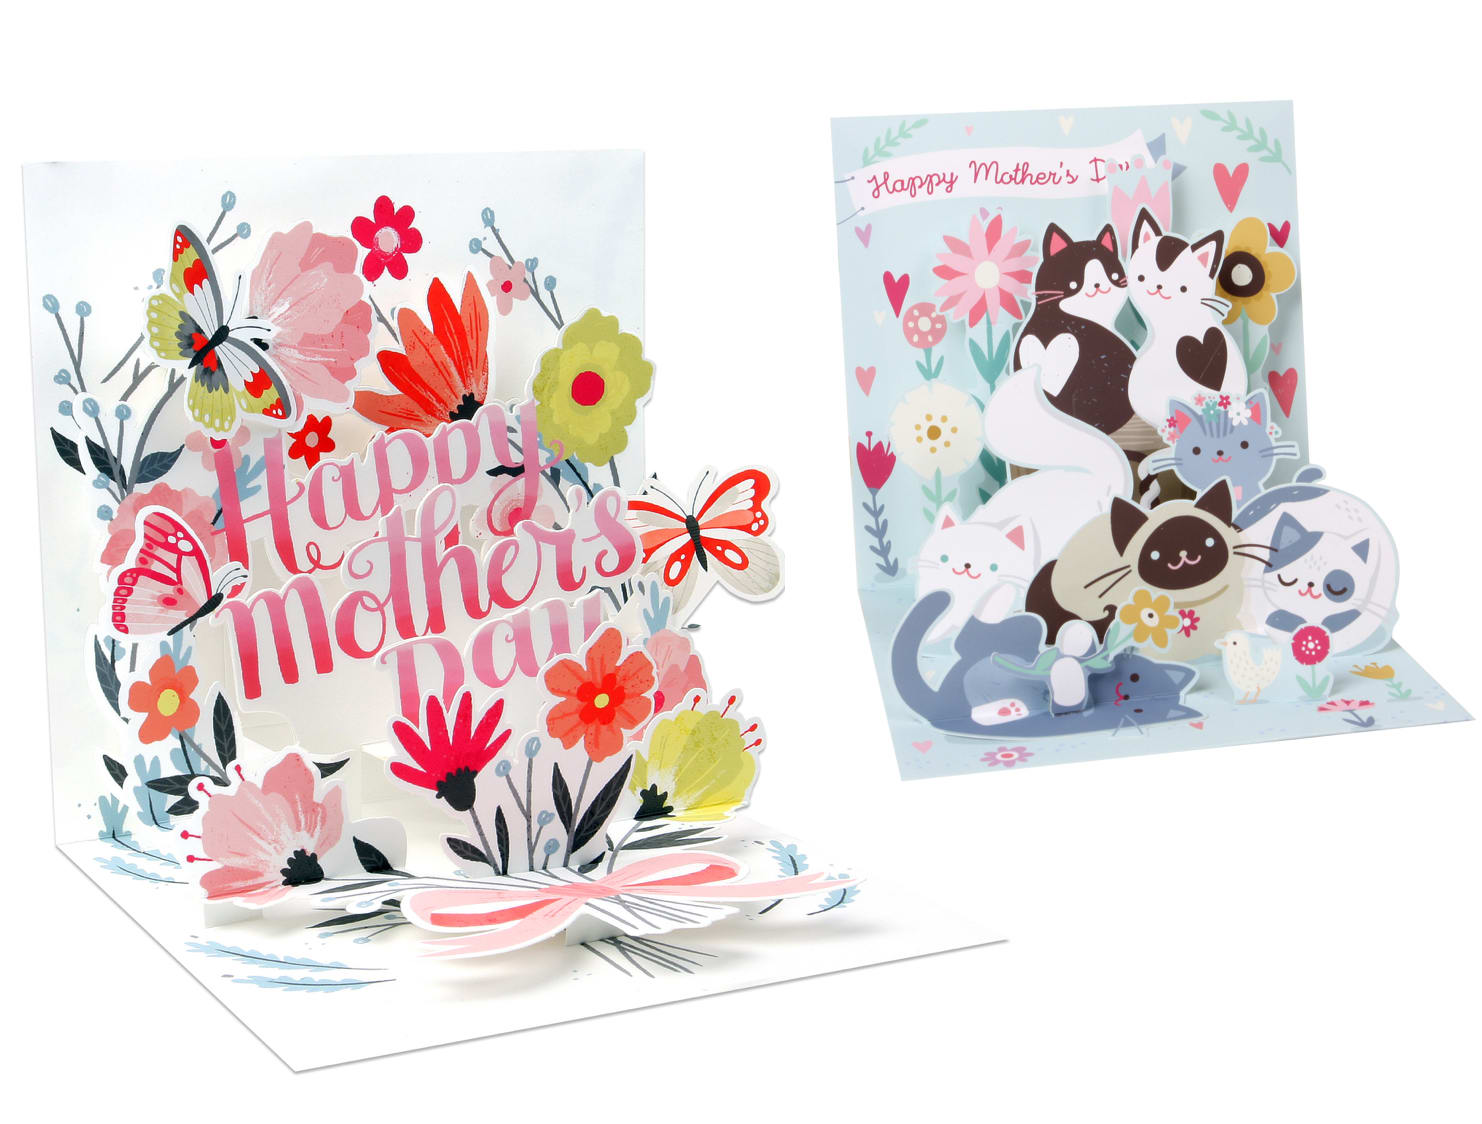 Mother's day pop-up greeting cards